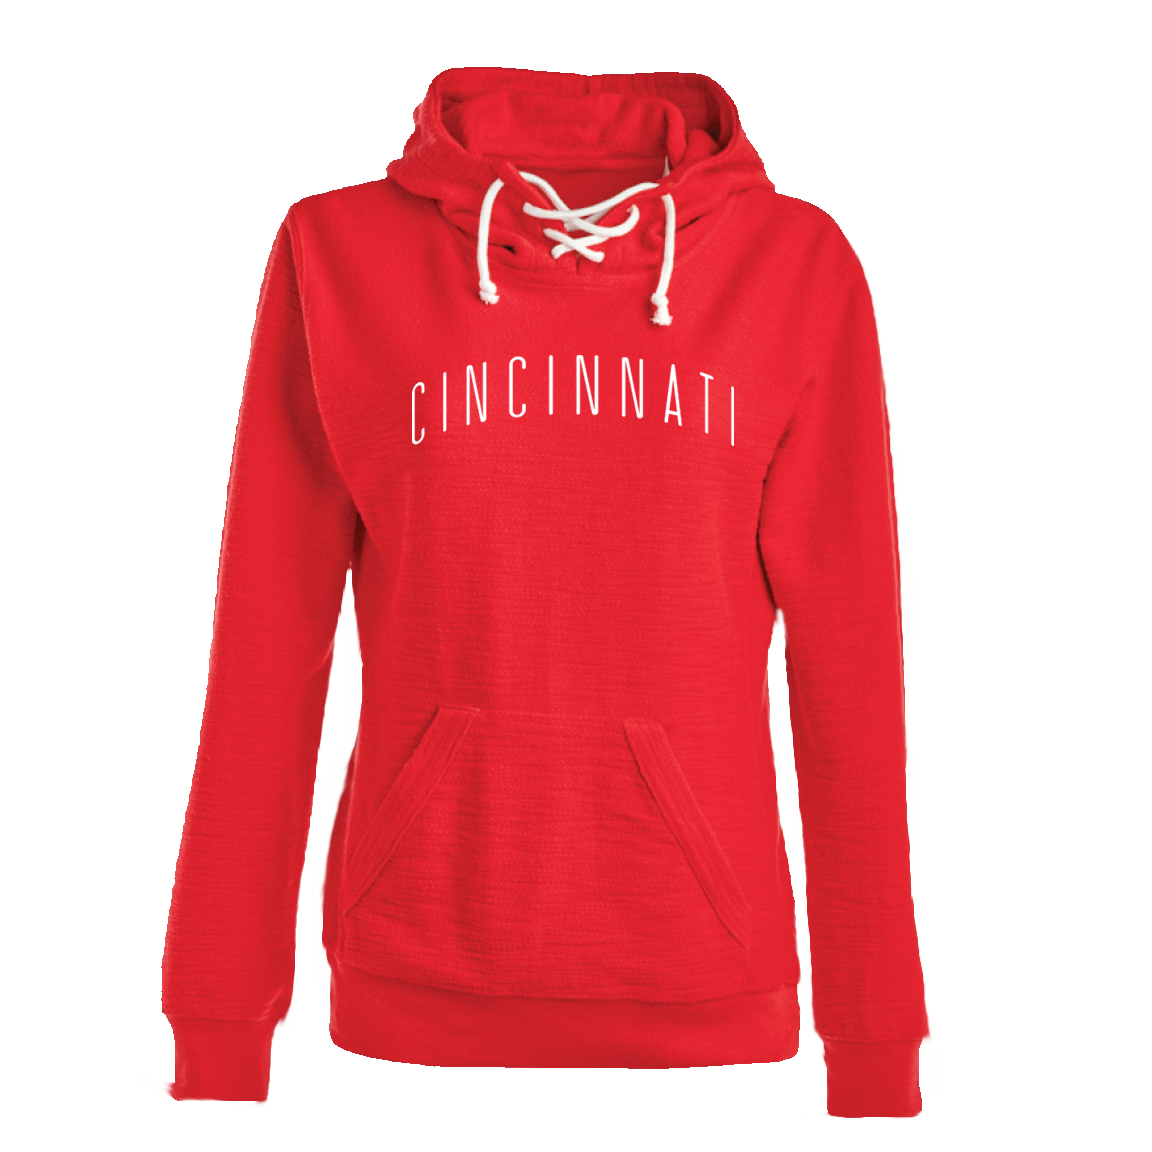 Cincinnati Ladies Sport Lace Hoodie - Cincy Shirts